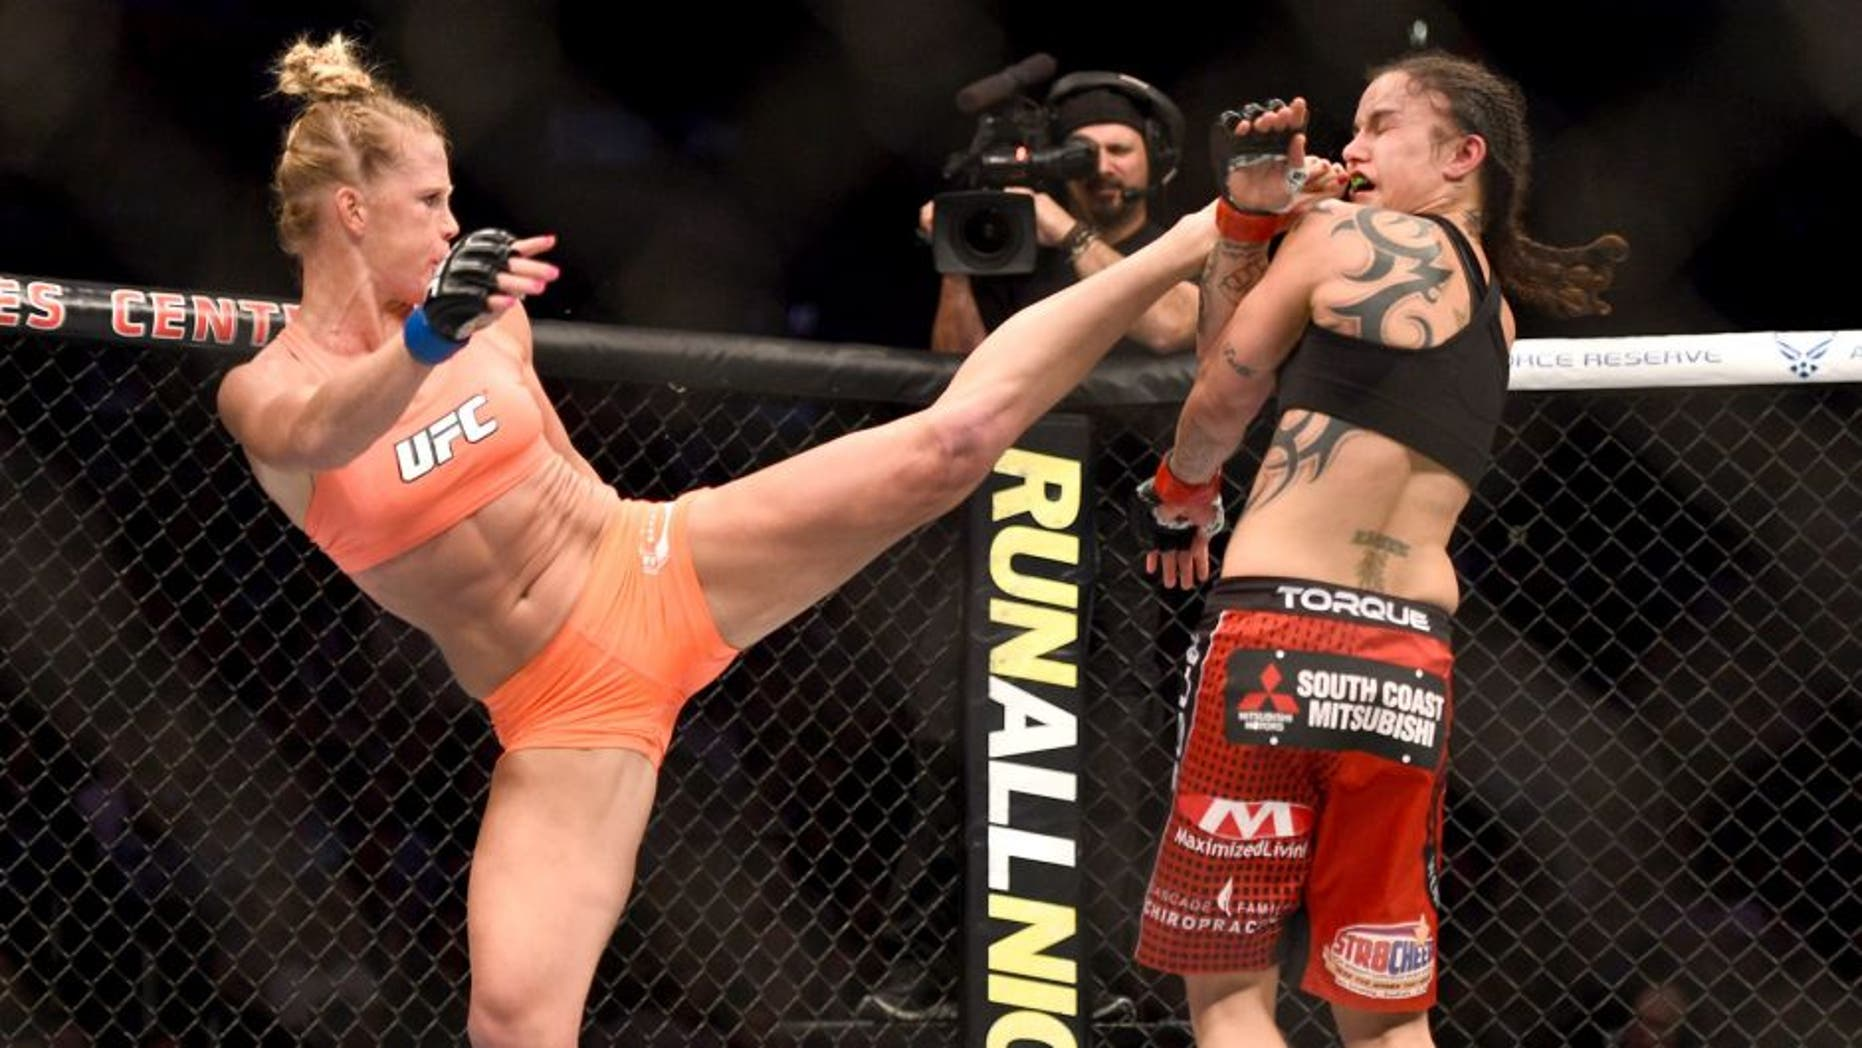 LOS ANGELES, CA - FEBRUARY 28: (L) Holly Holm kicks Raquel Pennington in their women's bantamweight bout during the UFC 184 event at Staples Center on February 28, 2015 in Los Angeles, California. (Photo by Jeff Bottari/Zuffa LLC/Zuffa LLC via Getty Images)